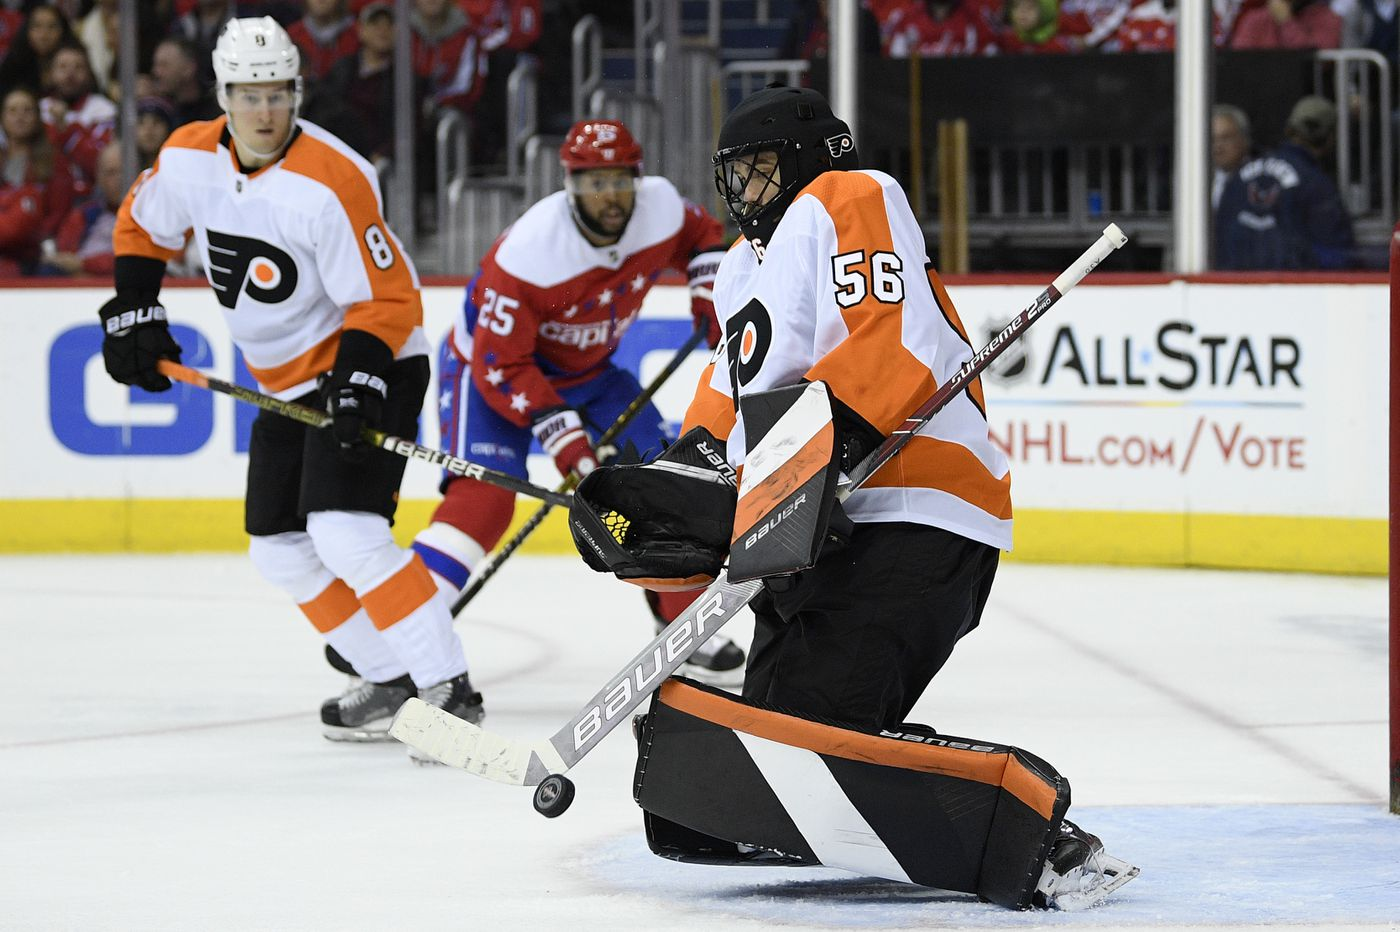 Flyers-Capitals observations: A backup goalie stands out yet again